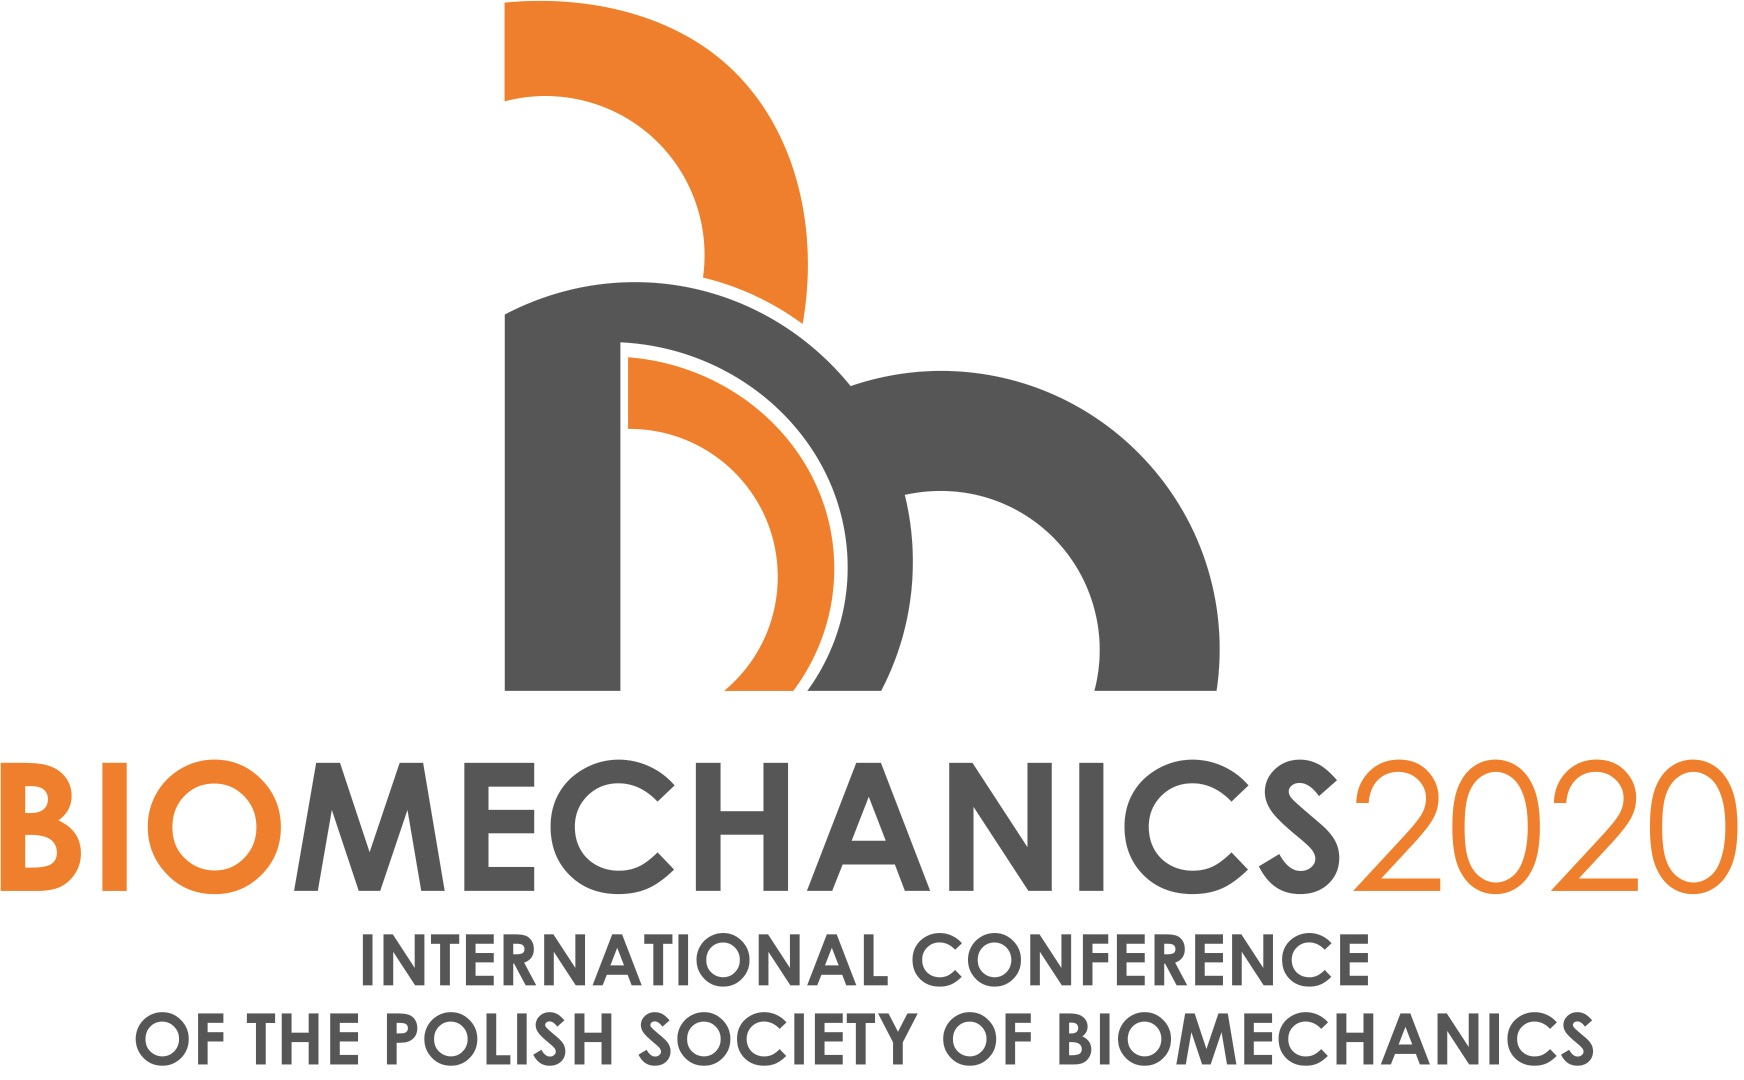 BIOMECHANICS 2020 logo